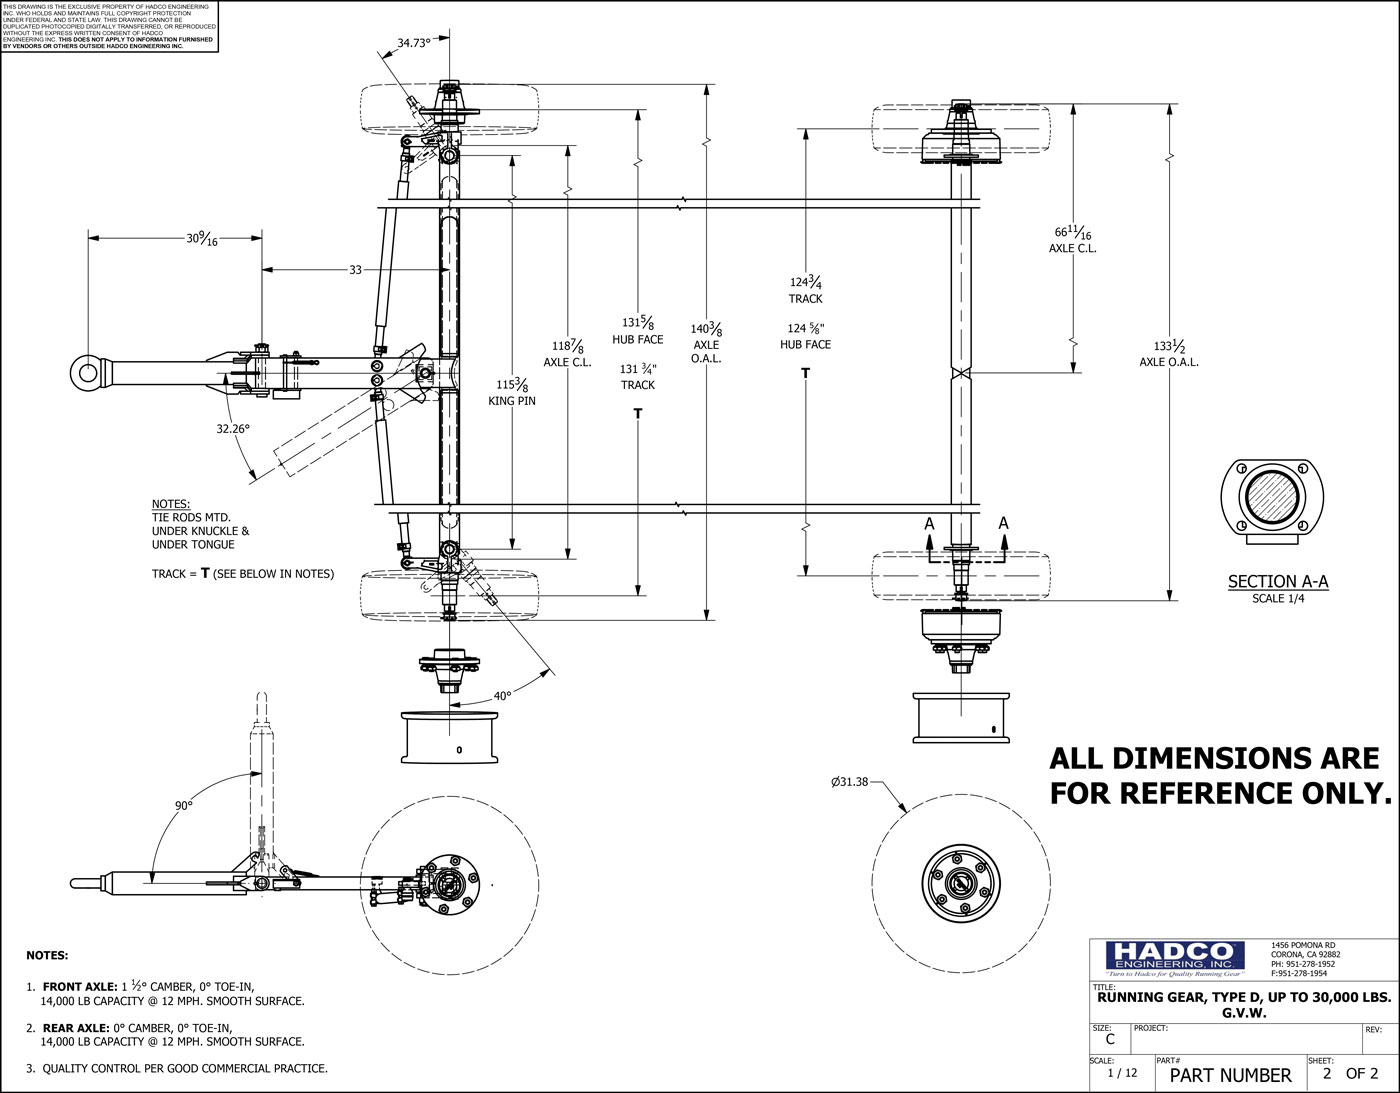 Tandem Wiring For Lighting - Auto Electrical Wiring Diagram on utility trailer seats, utility trailer specifications, trailer parts diagram, utility trailer suspension, 7 pronge trailer connector diagram, utility trailer steering diagram, truck trailer diagram, utility trailer plug, 4 pin trailer diagram, utility trailer chassis, utility trailer maintenance, utility trailer frame, utility trailer parts catalog, utility trailer lights, utility trailer assembly, utility trailer schematics, utility trailer repair, utility trailer accessories, utility trailer motor, electric trailer jack switch diagram,